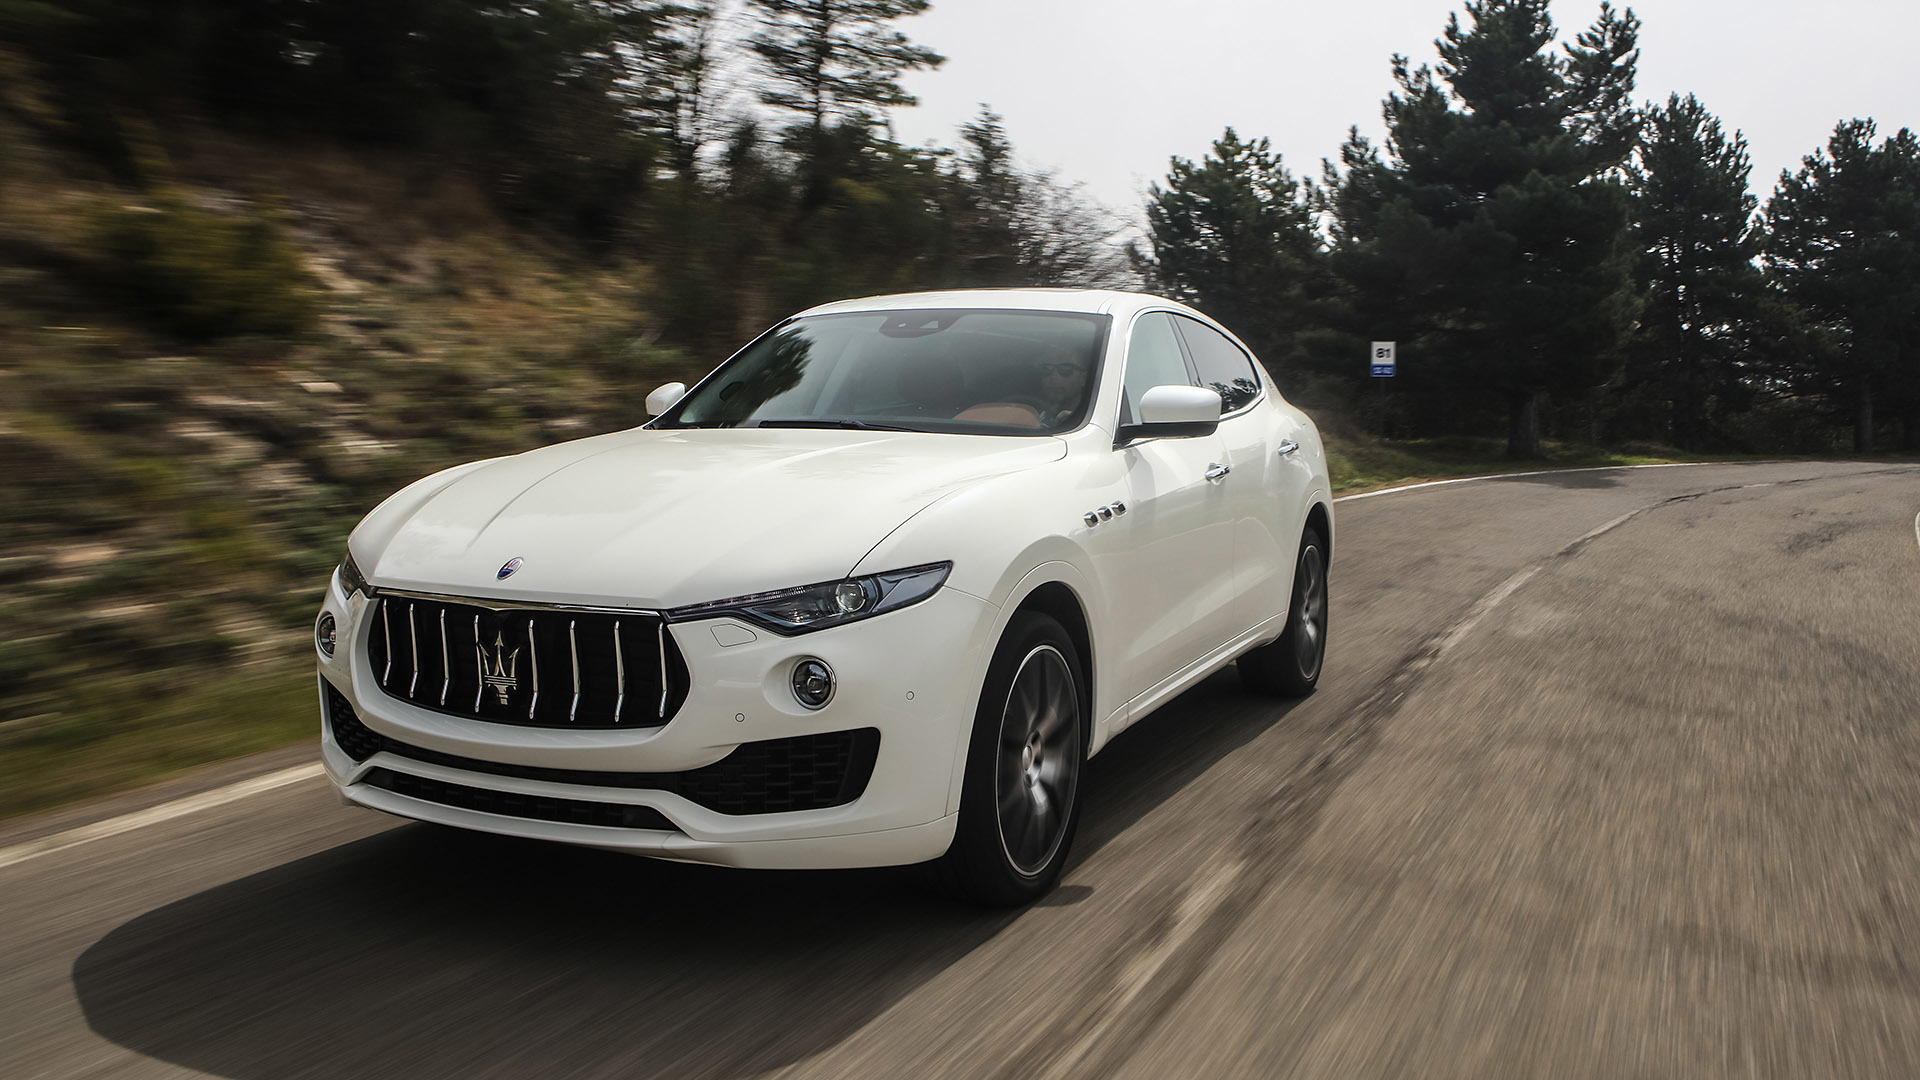 2017 Maserati Levante (Photo 9 of 37)